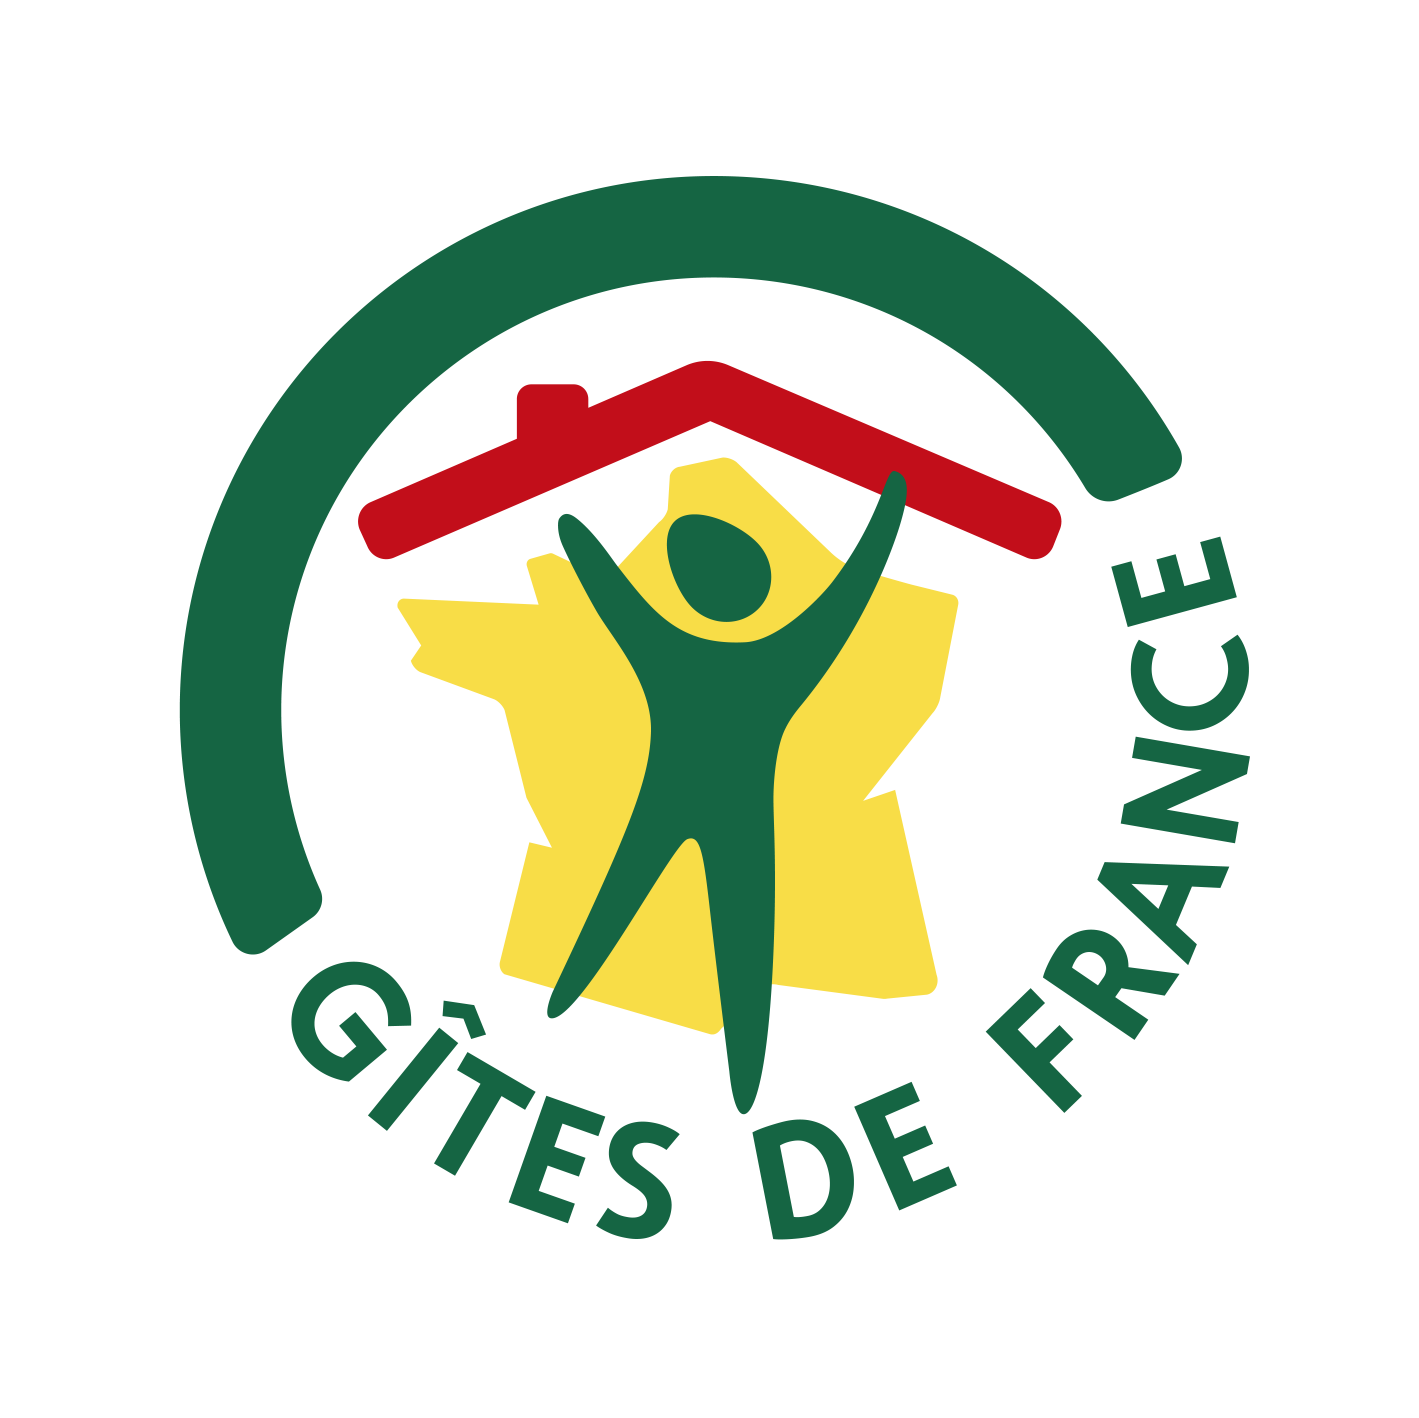 05 Logo GITES DE FRANCE 100x100mm 3 Couleurs RVB